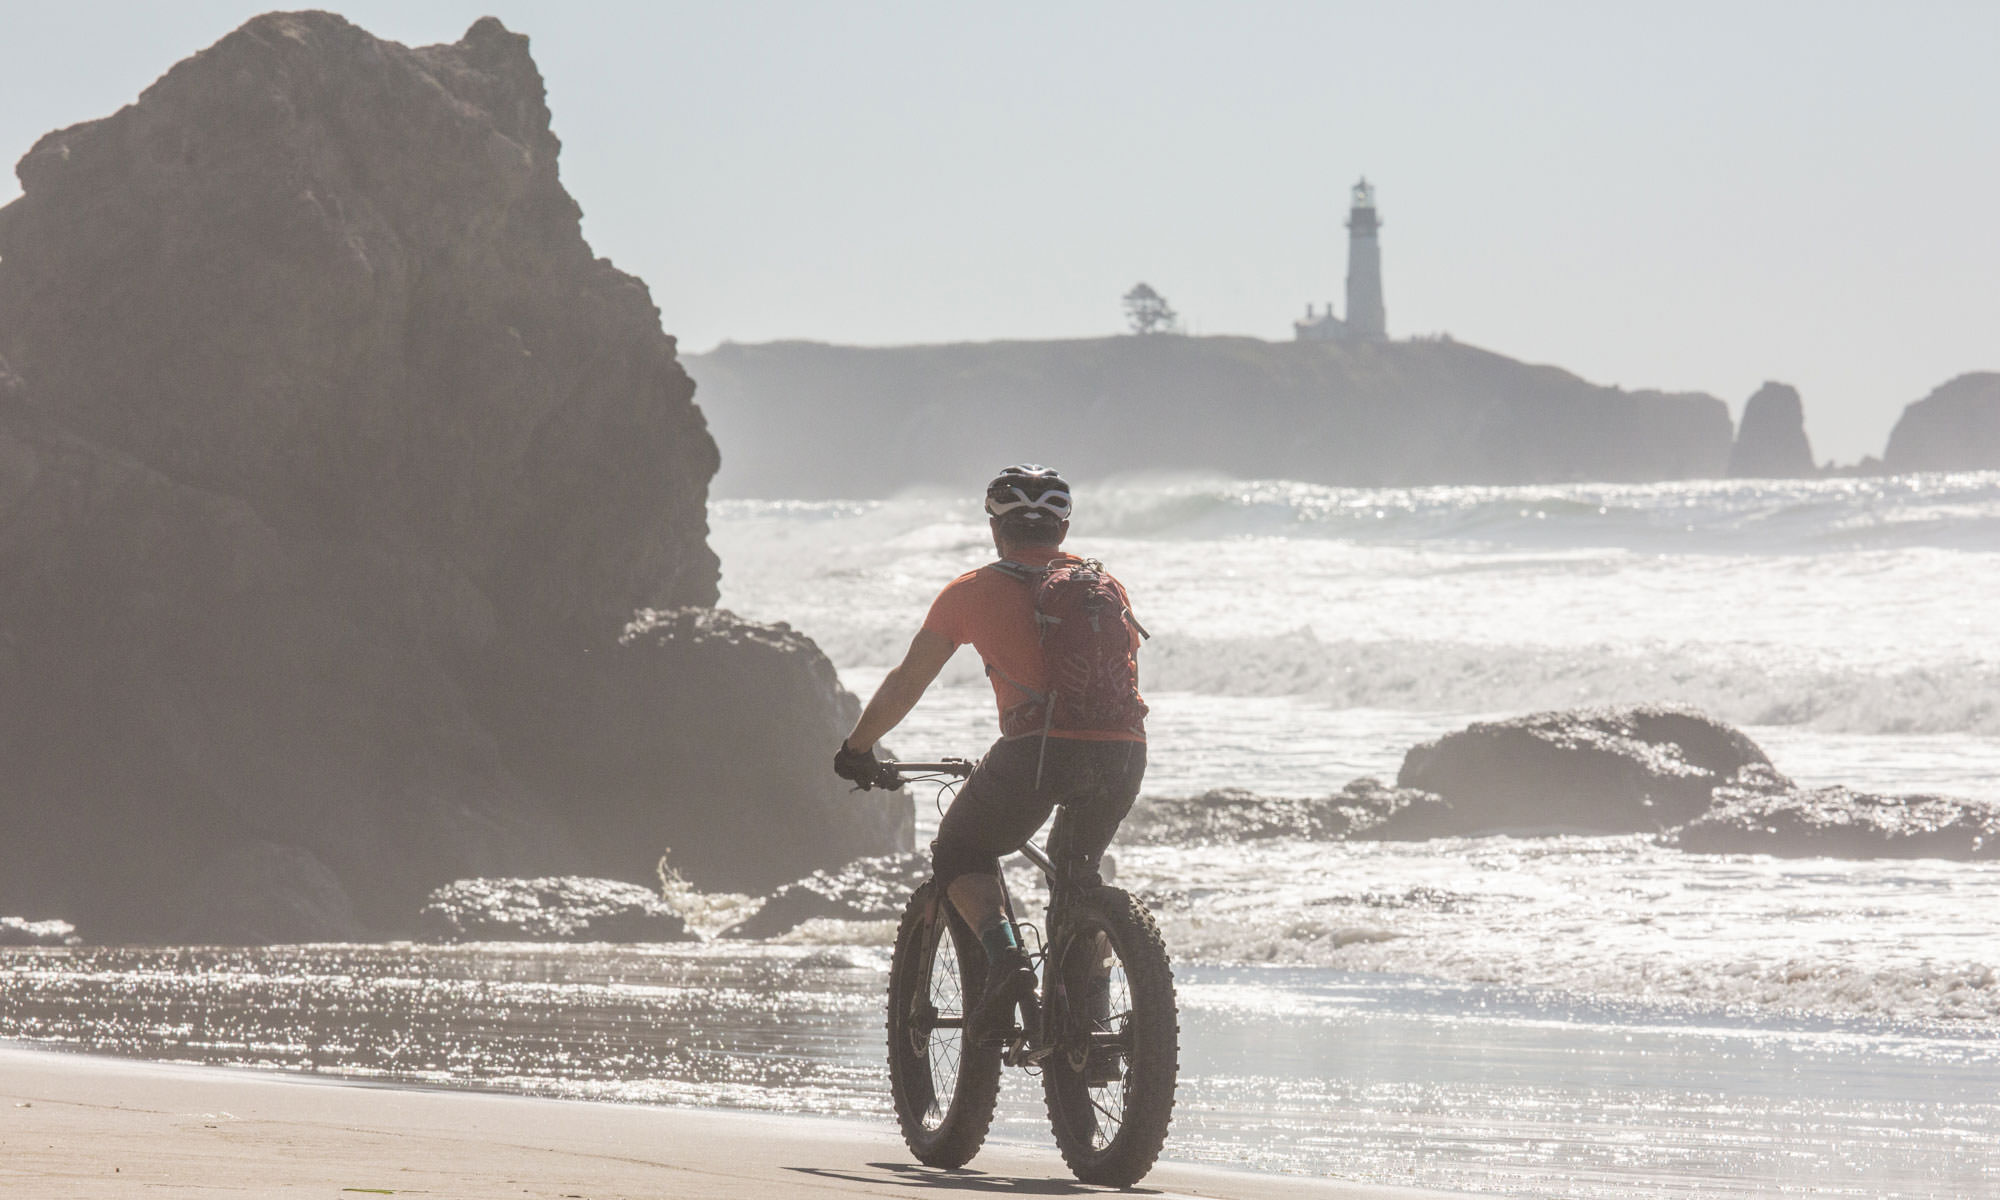 A fat biker approaches rocks on the shoreline, with the lighthouse in the background.